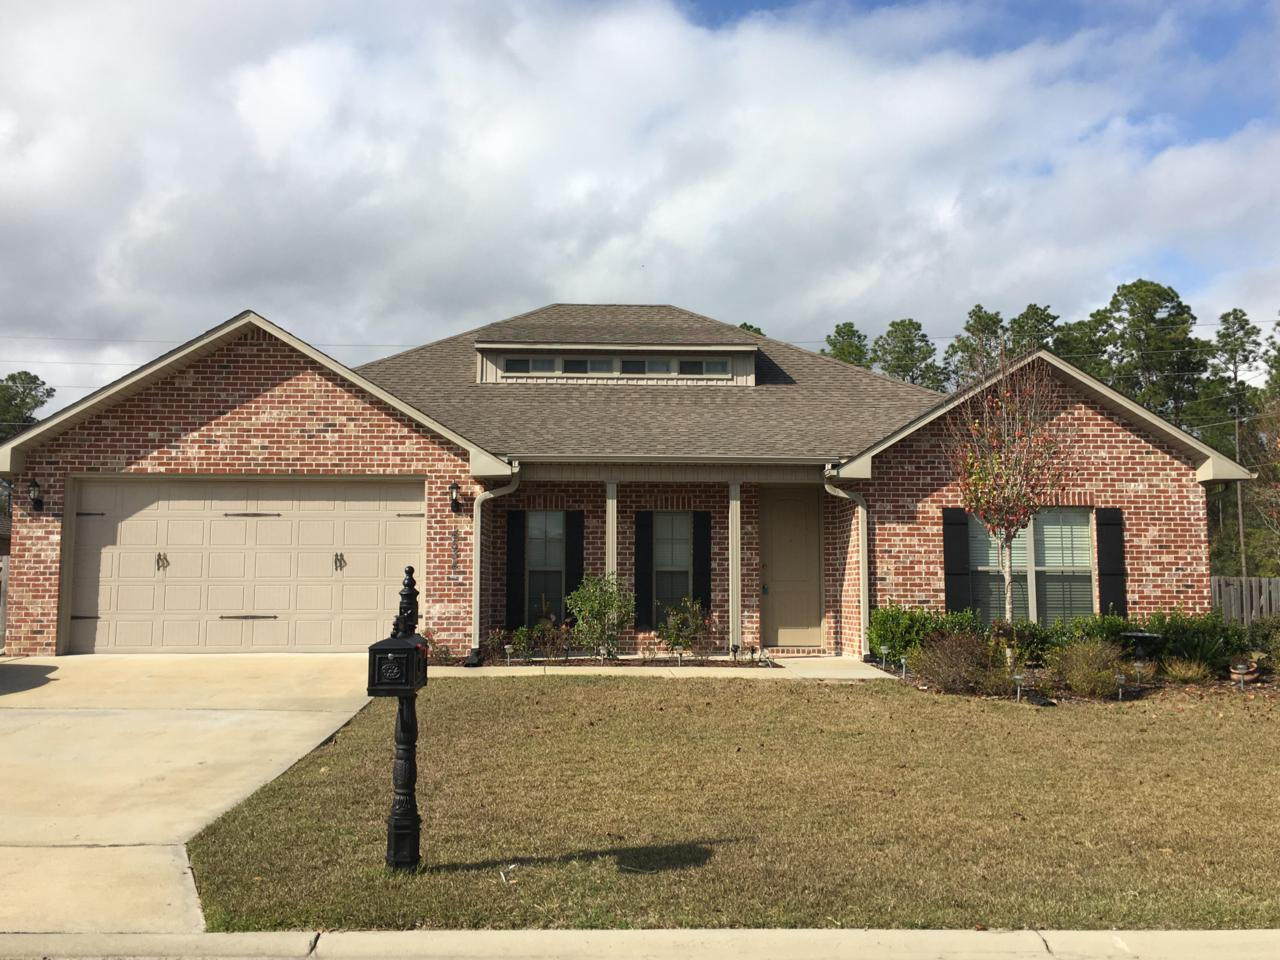 4534 Annabelle Lane Crestview, FL 32539